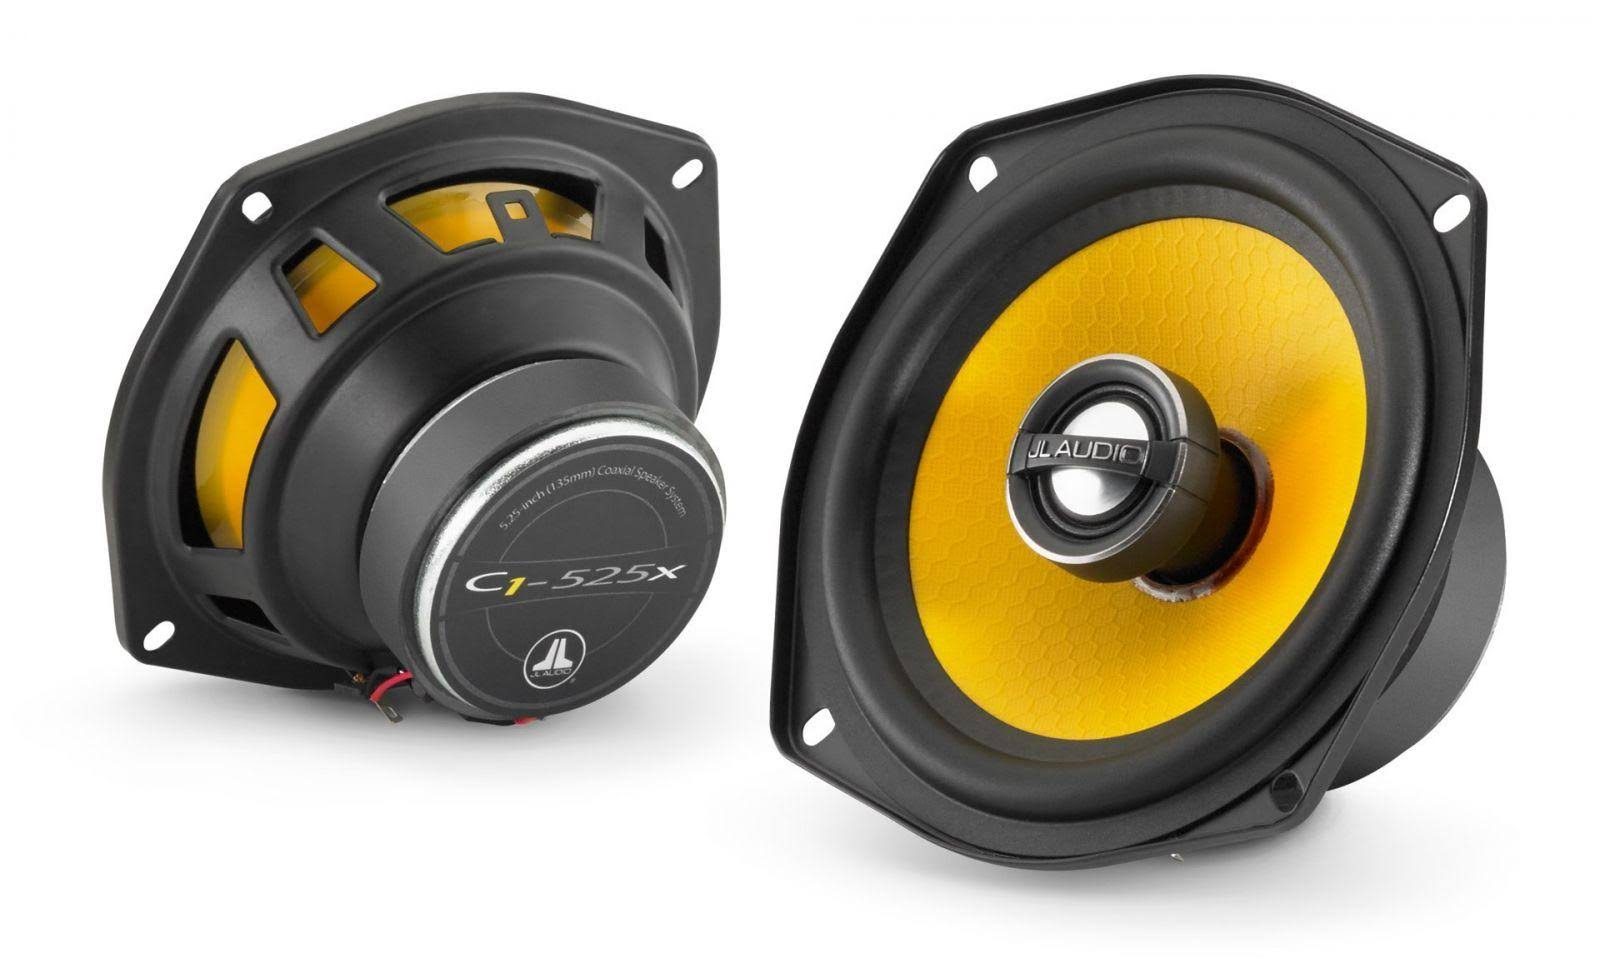 "Jl Audio Rms C1 Series 2 way Coaxial Speakers System - 5.25"", 75W"